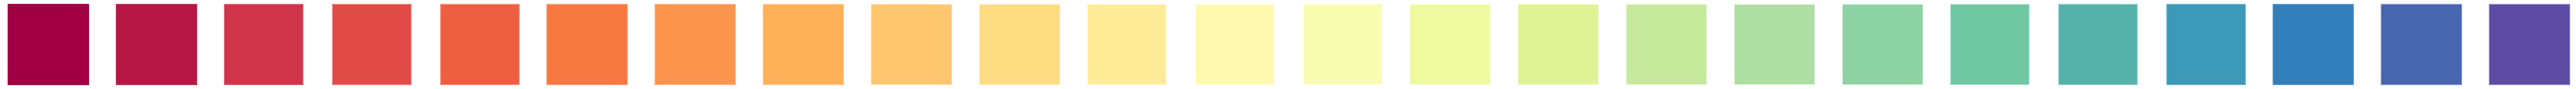 When to use color schemes